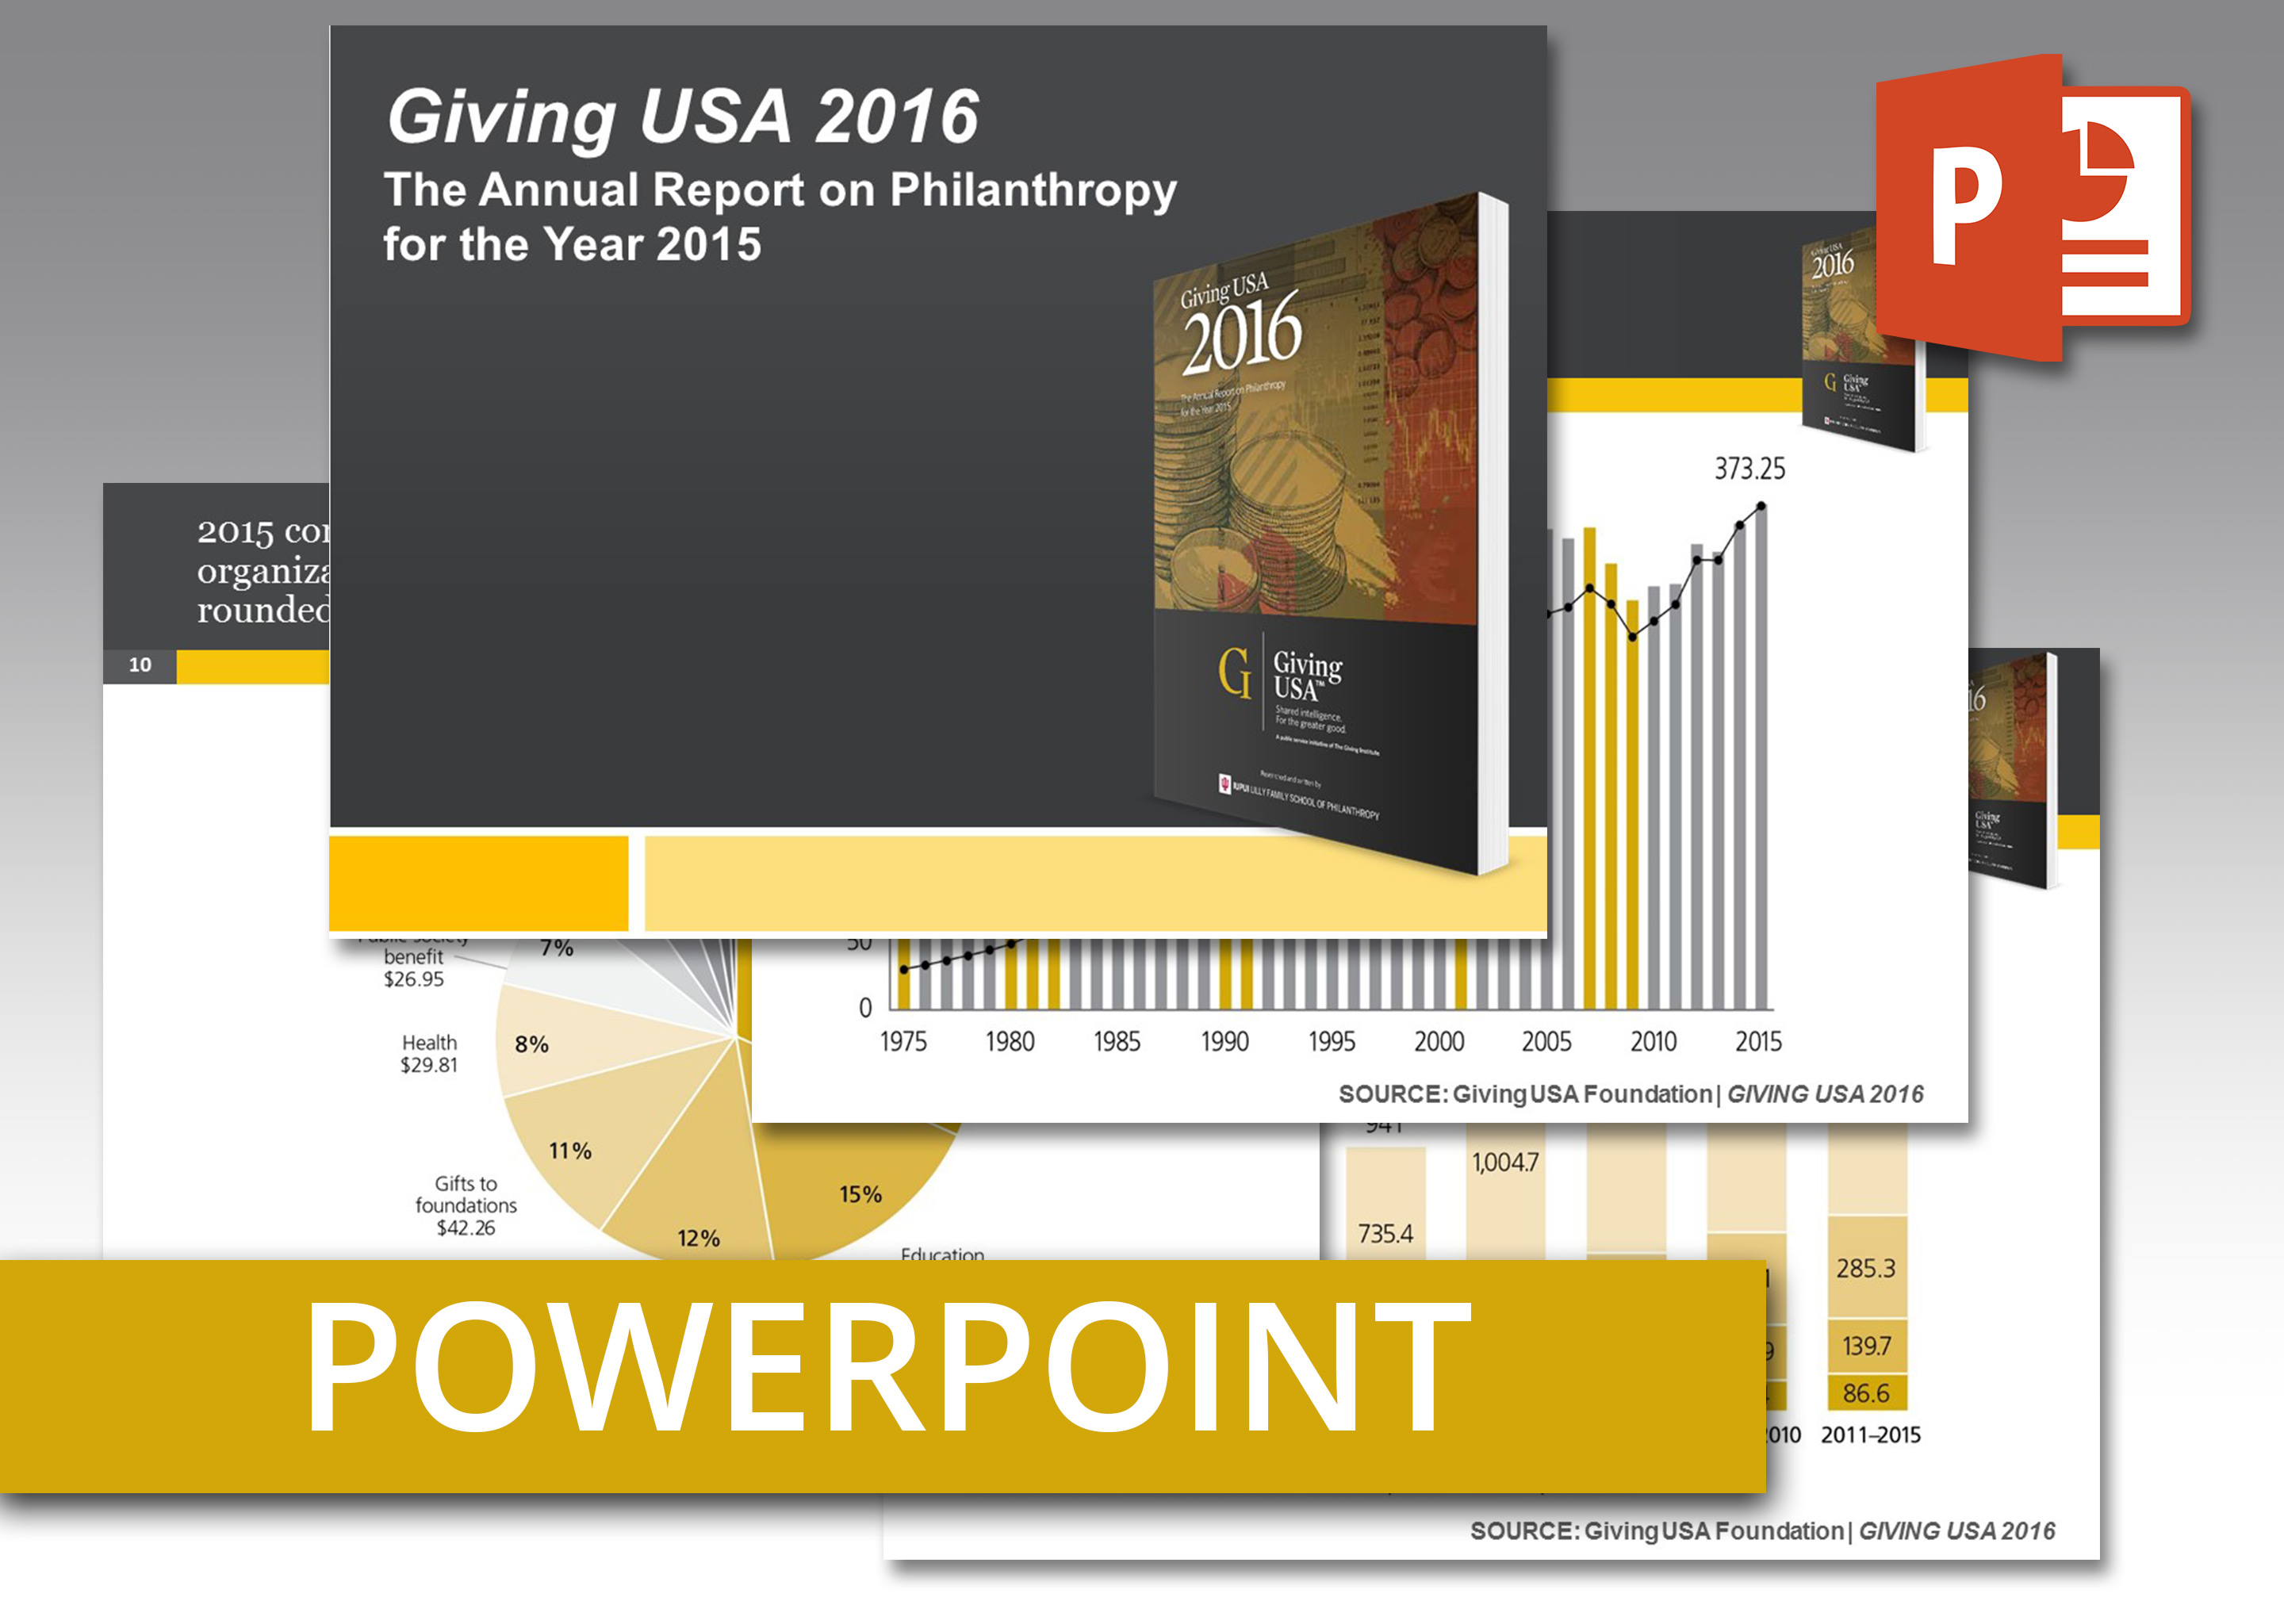 Usdgus  Wonderful Giving Usa  Powerpoint An Easytouse Presentation Of Report  With Great Giving Usa  Powerpoint An Easytouse Presentation Of Report Findings Including Talking Points With Cute Romantic Powerpoint Templates Also Pdf Conversion To Powerpoint In Addition Template Powerpoint  Free Download And Animated Powerpoint Presentation Free Download As Well As Why Powerpoint Additionally Ms Powerpoint  Free Download Full Version From Givingusaorg With Usdgus  Great Giving Usa  Powerpoint An Easytouse Presentation Of Report  With Cute Giving Usa  Powerpoint An Easytouse Presentation Of Report Findings Including Talking Points And Wonderful Romantic Powerpoint Templates Also Pdf Conversion To Powerpoint In Addition Template Powerpoint  Free Download From Givingusaorg